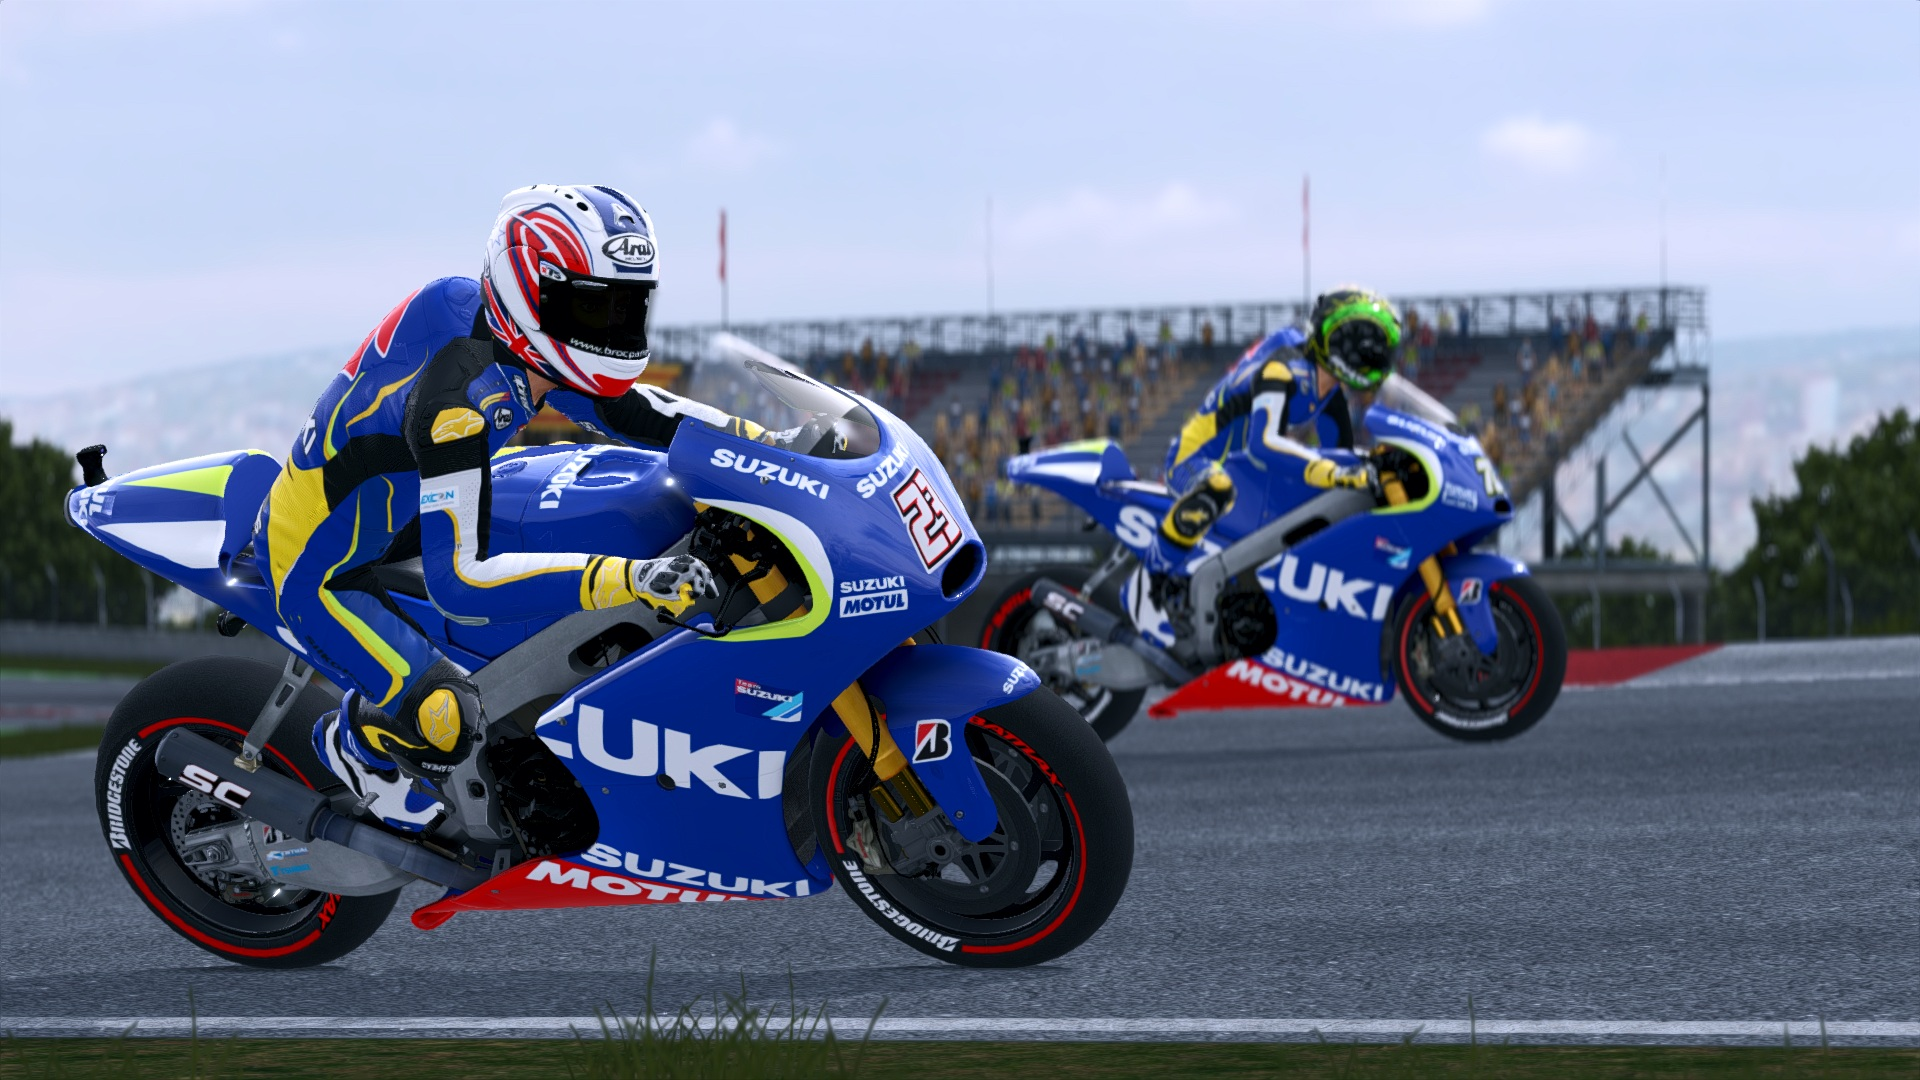 MotoGP 15 May Have Performance Issues On XBox | Racing Game Central